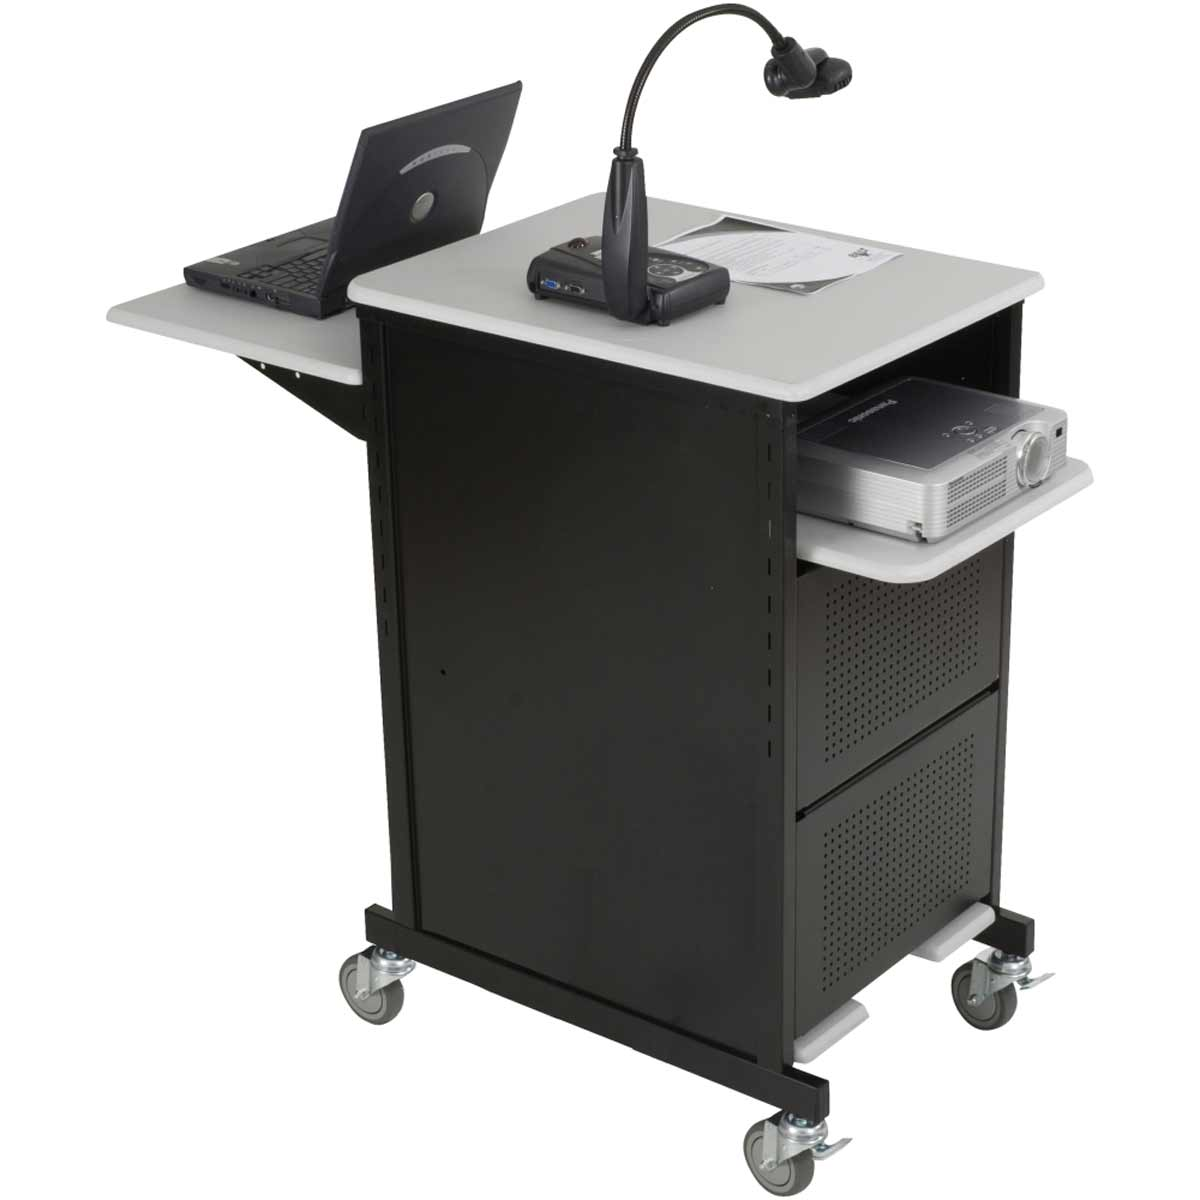 Balt presentation cart in black steel